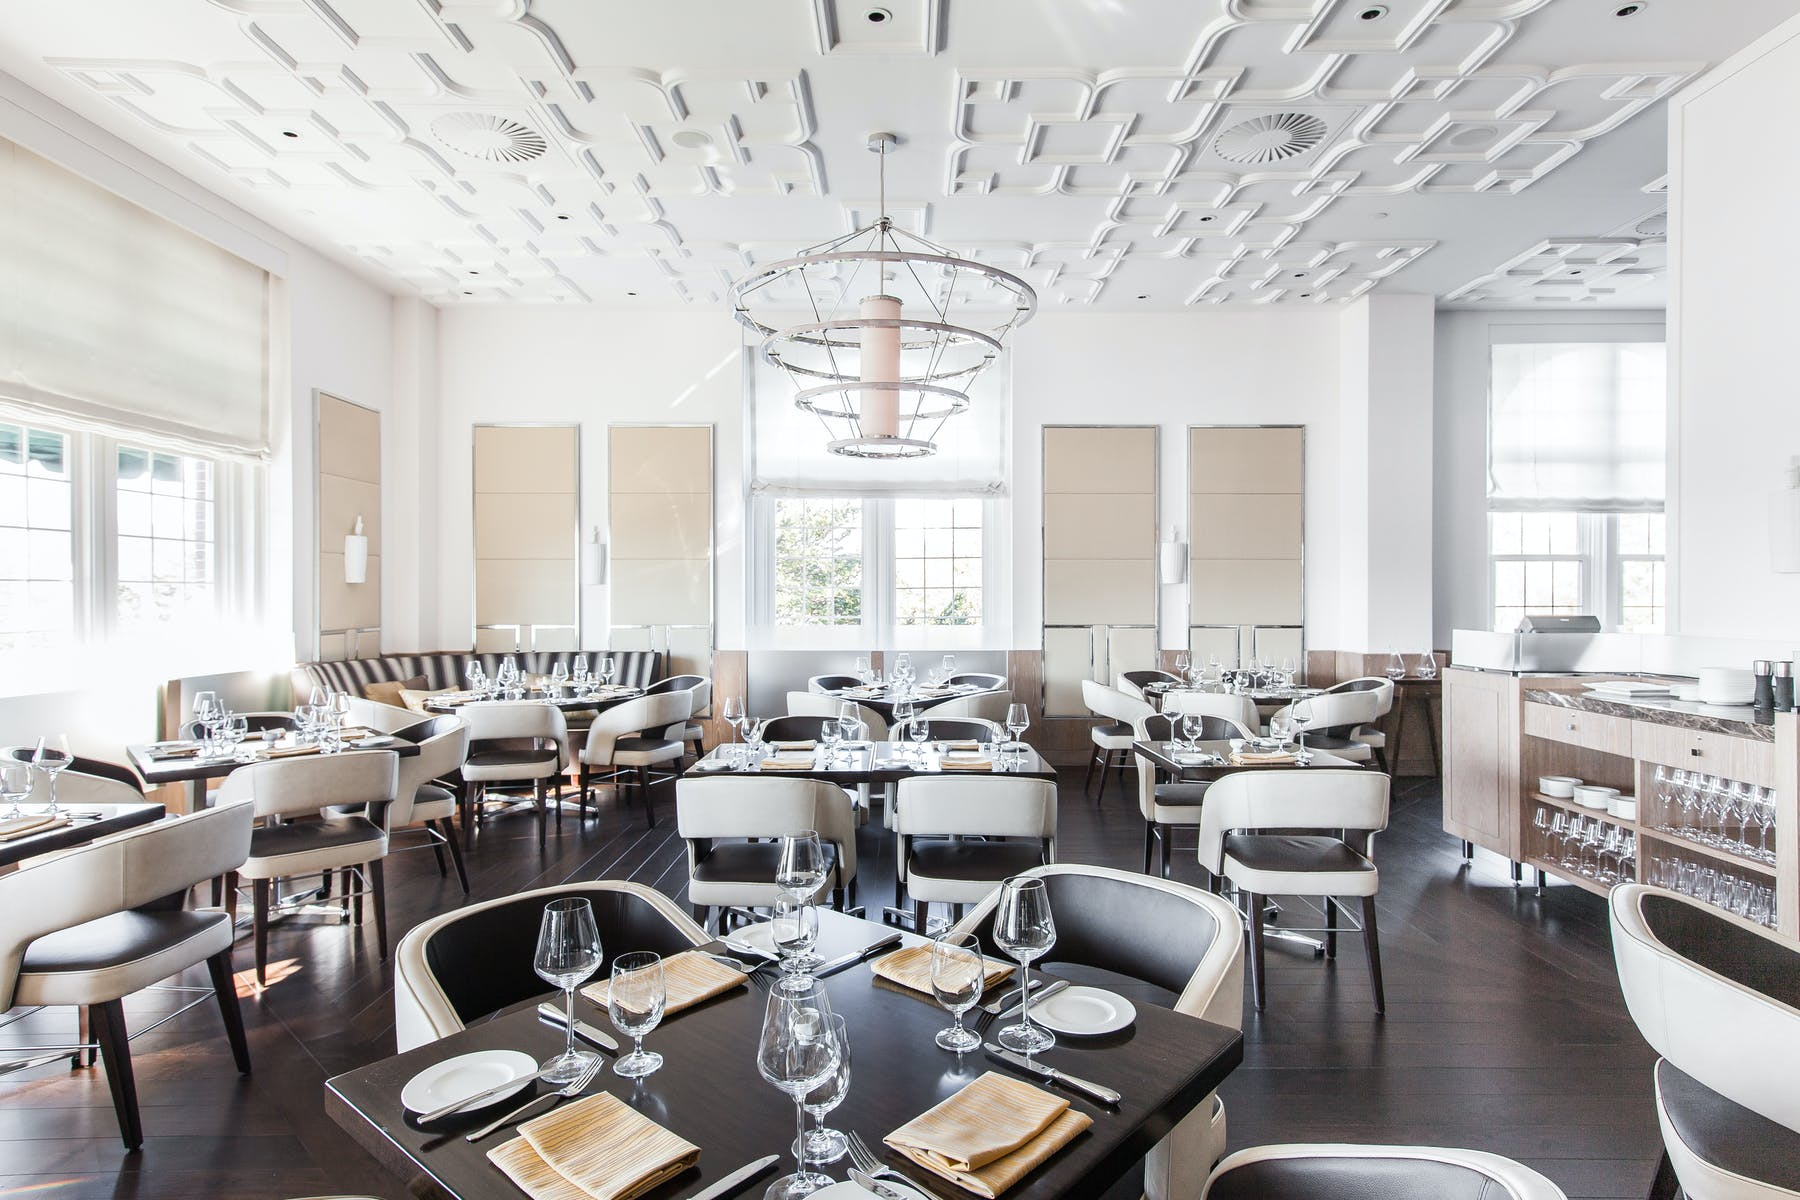 Interior of The Bocuse Restaurant dining room, on the campus of the Culinary Institute of America in Hyde Park, NY.